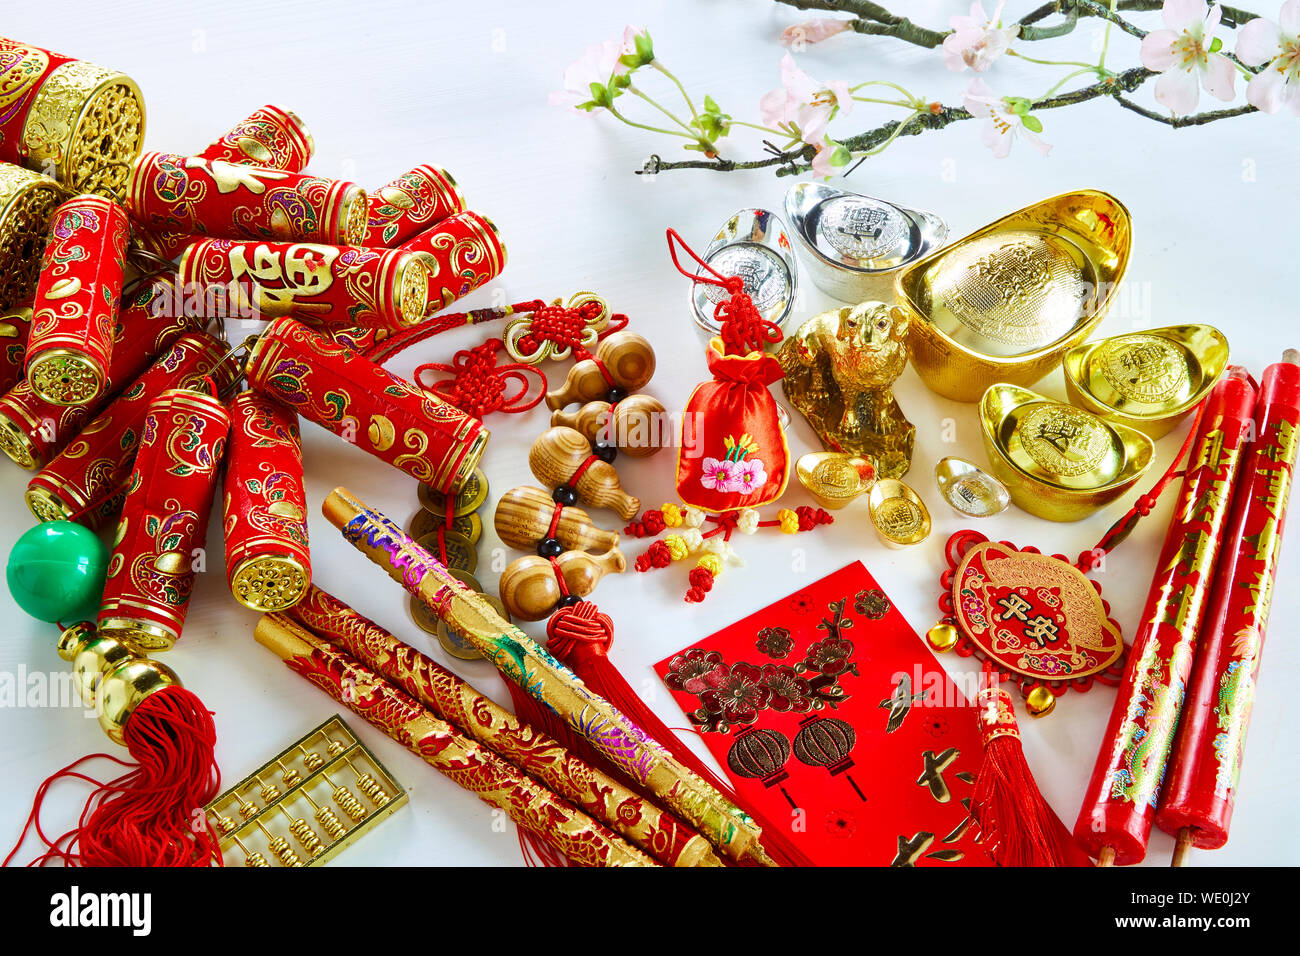 Chinese new year dog festival decorations , (Chinese characters in the article refer to good luck, wealth, money flow)means fortune and luck Stock Photo